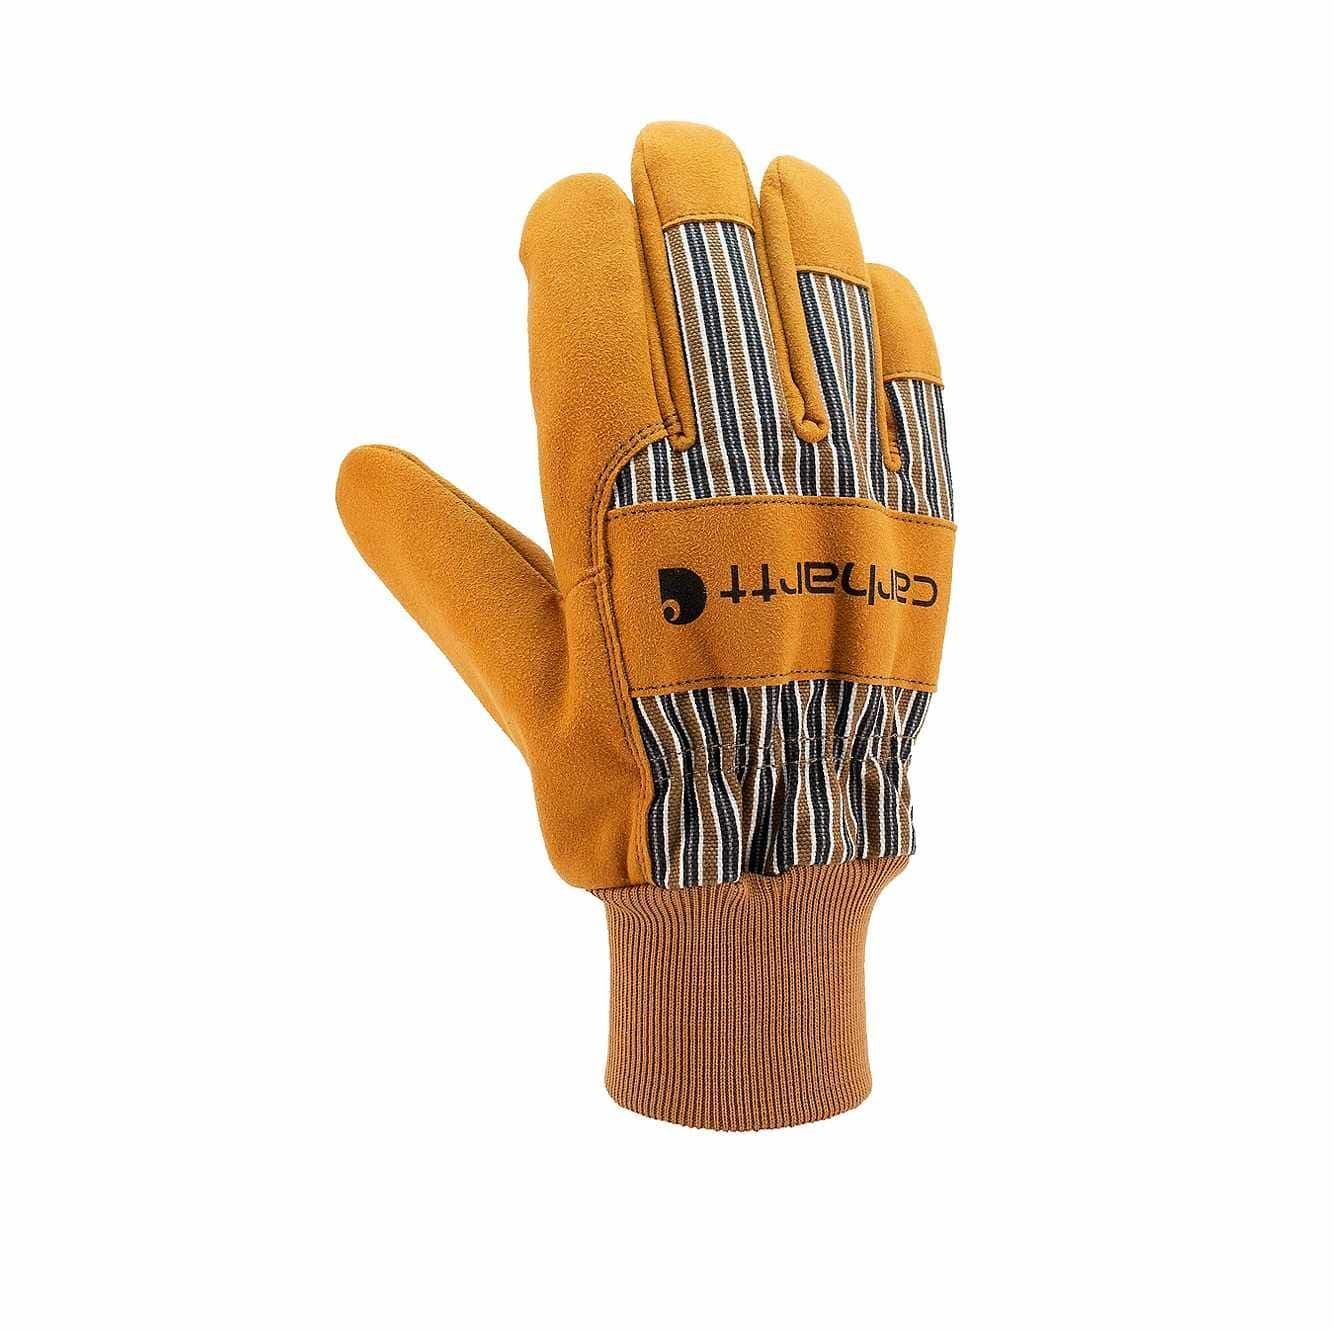 Picture of Synthetic Suede Knit Cuff Work Glove in Brown